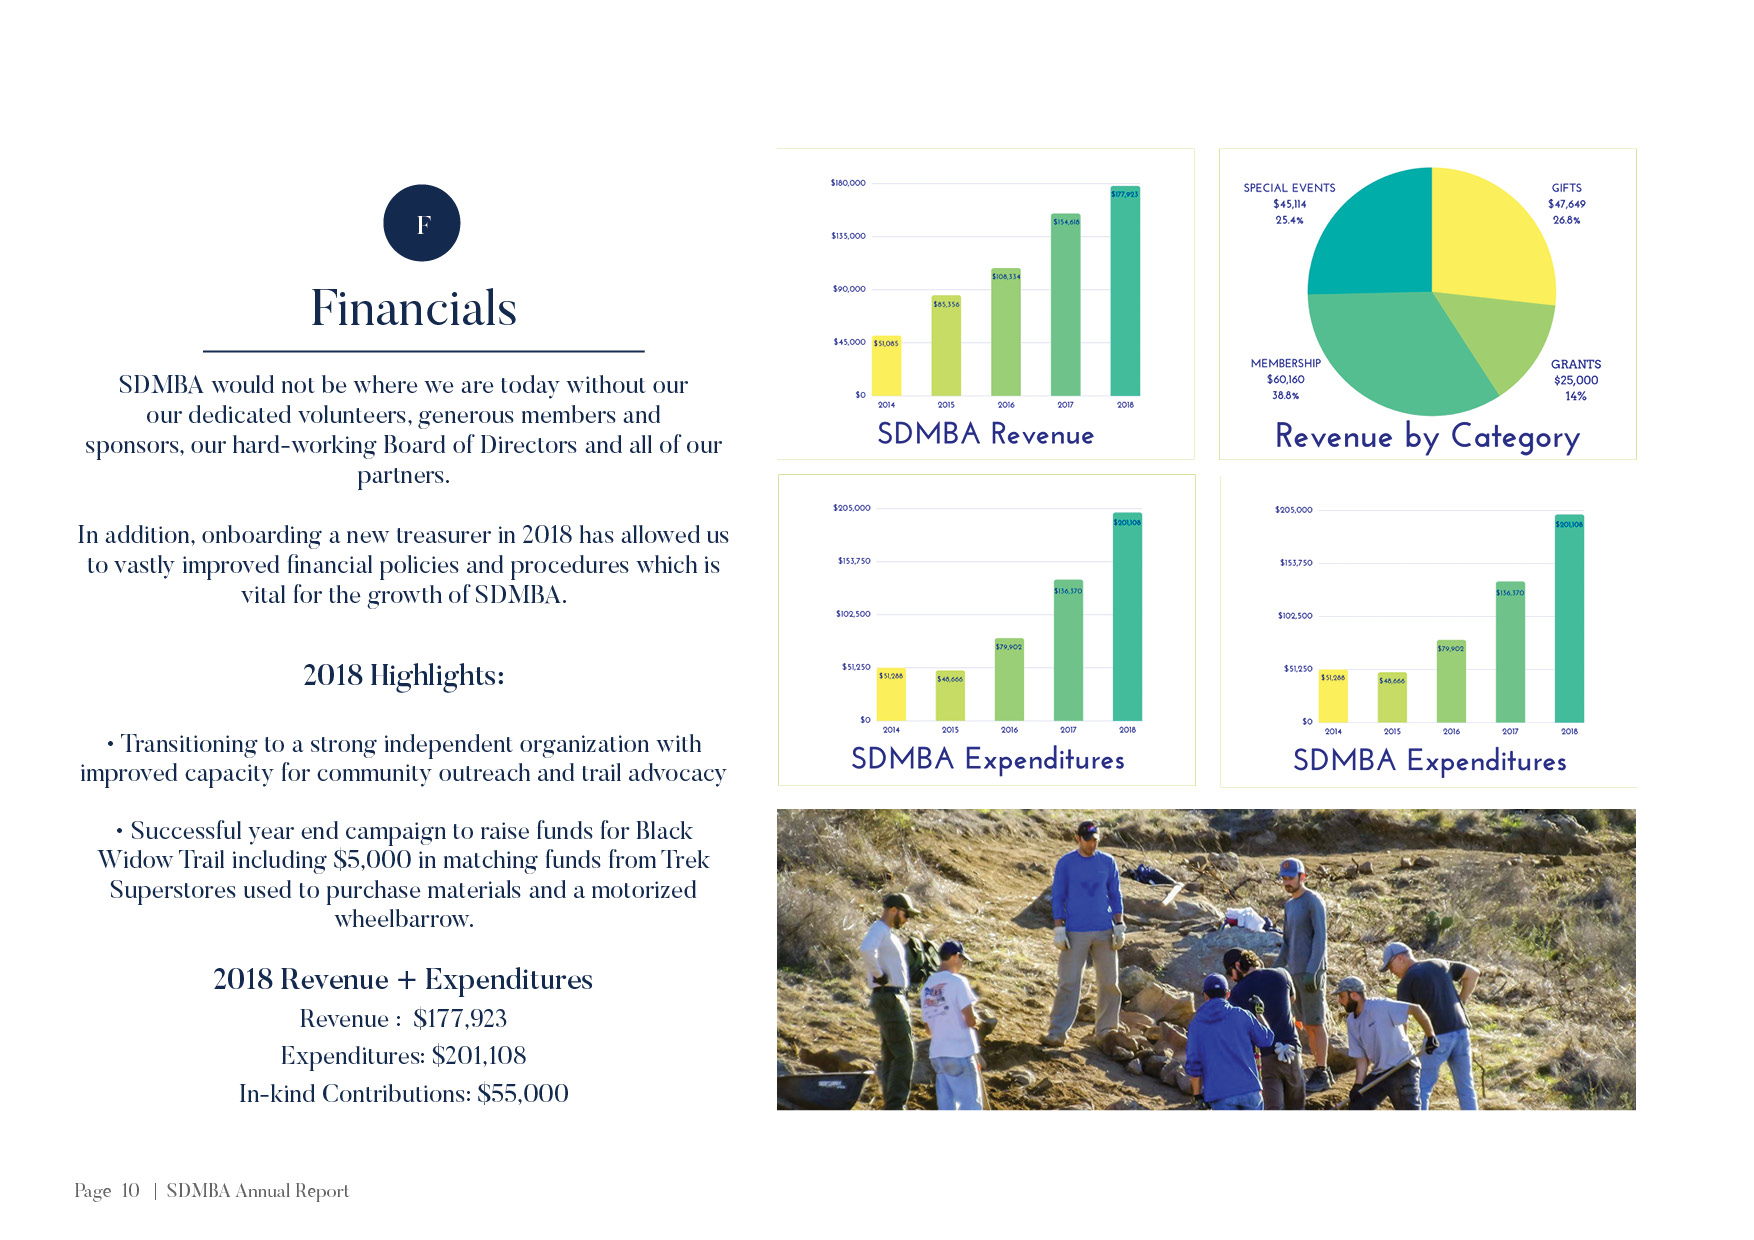 SDMBA Annual Report 2018 FINAL10.jpg